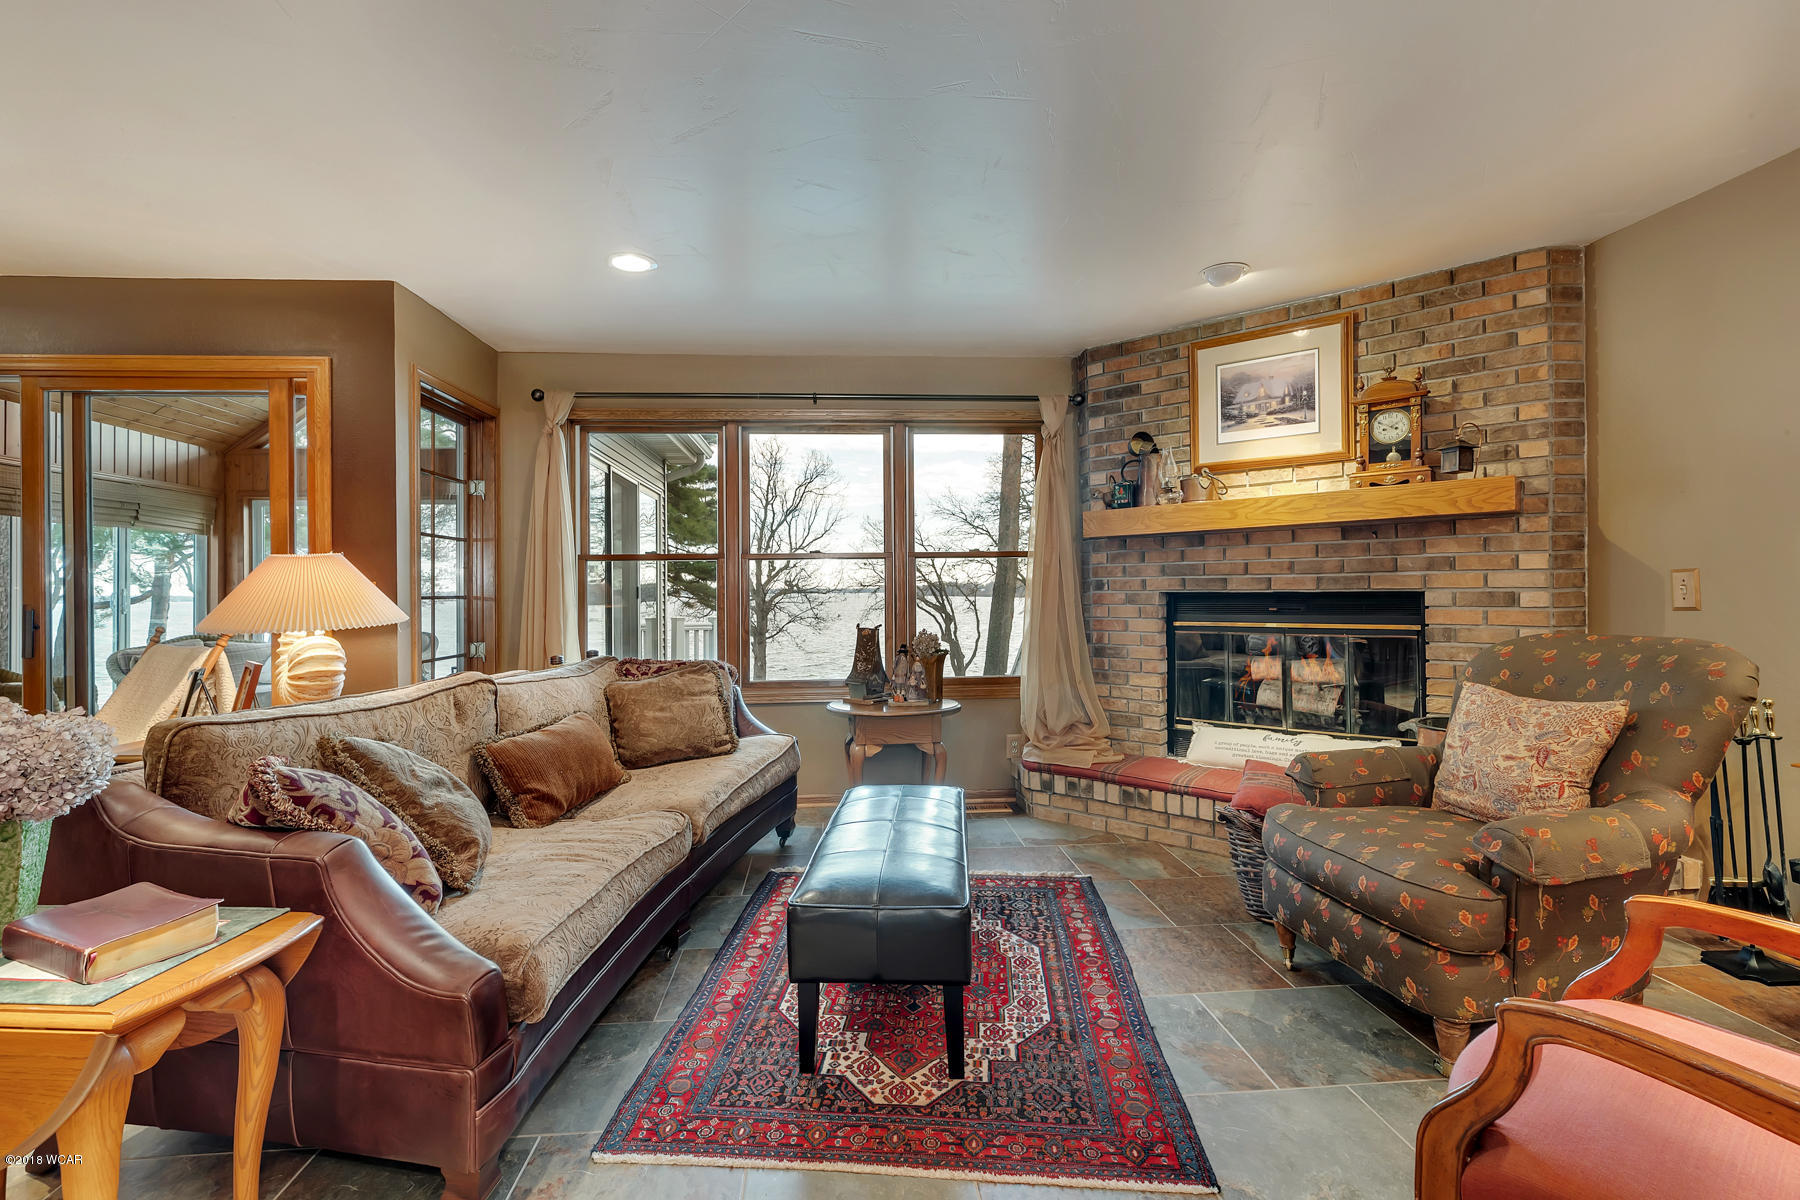 7705 North Shore Drive,Spicer,3 Bedrooms Bedrooms,3 BathroomsBathrooms,Single Family,North Shore Drive,6032812